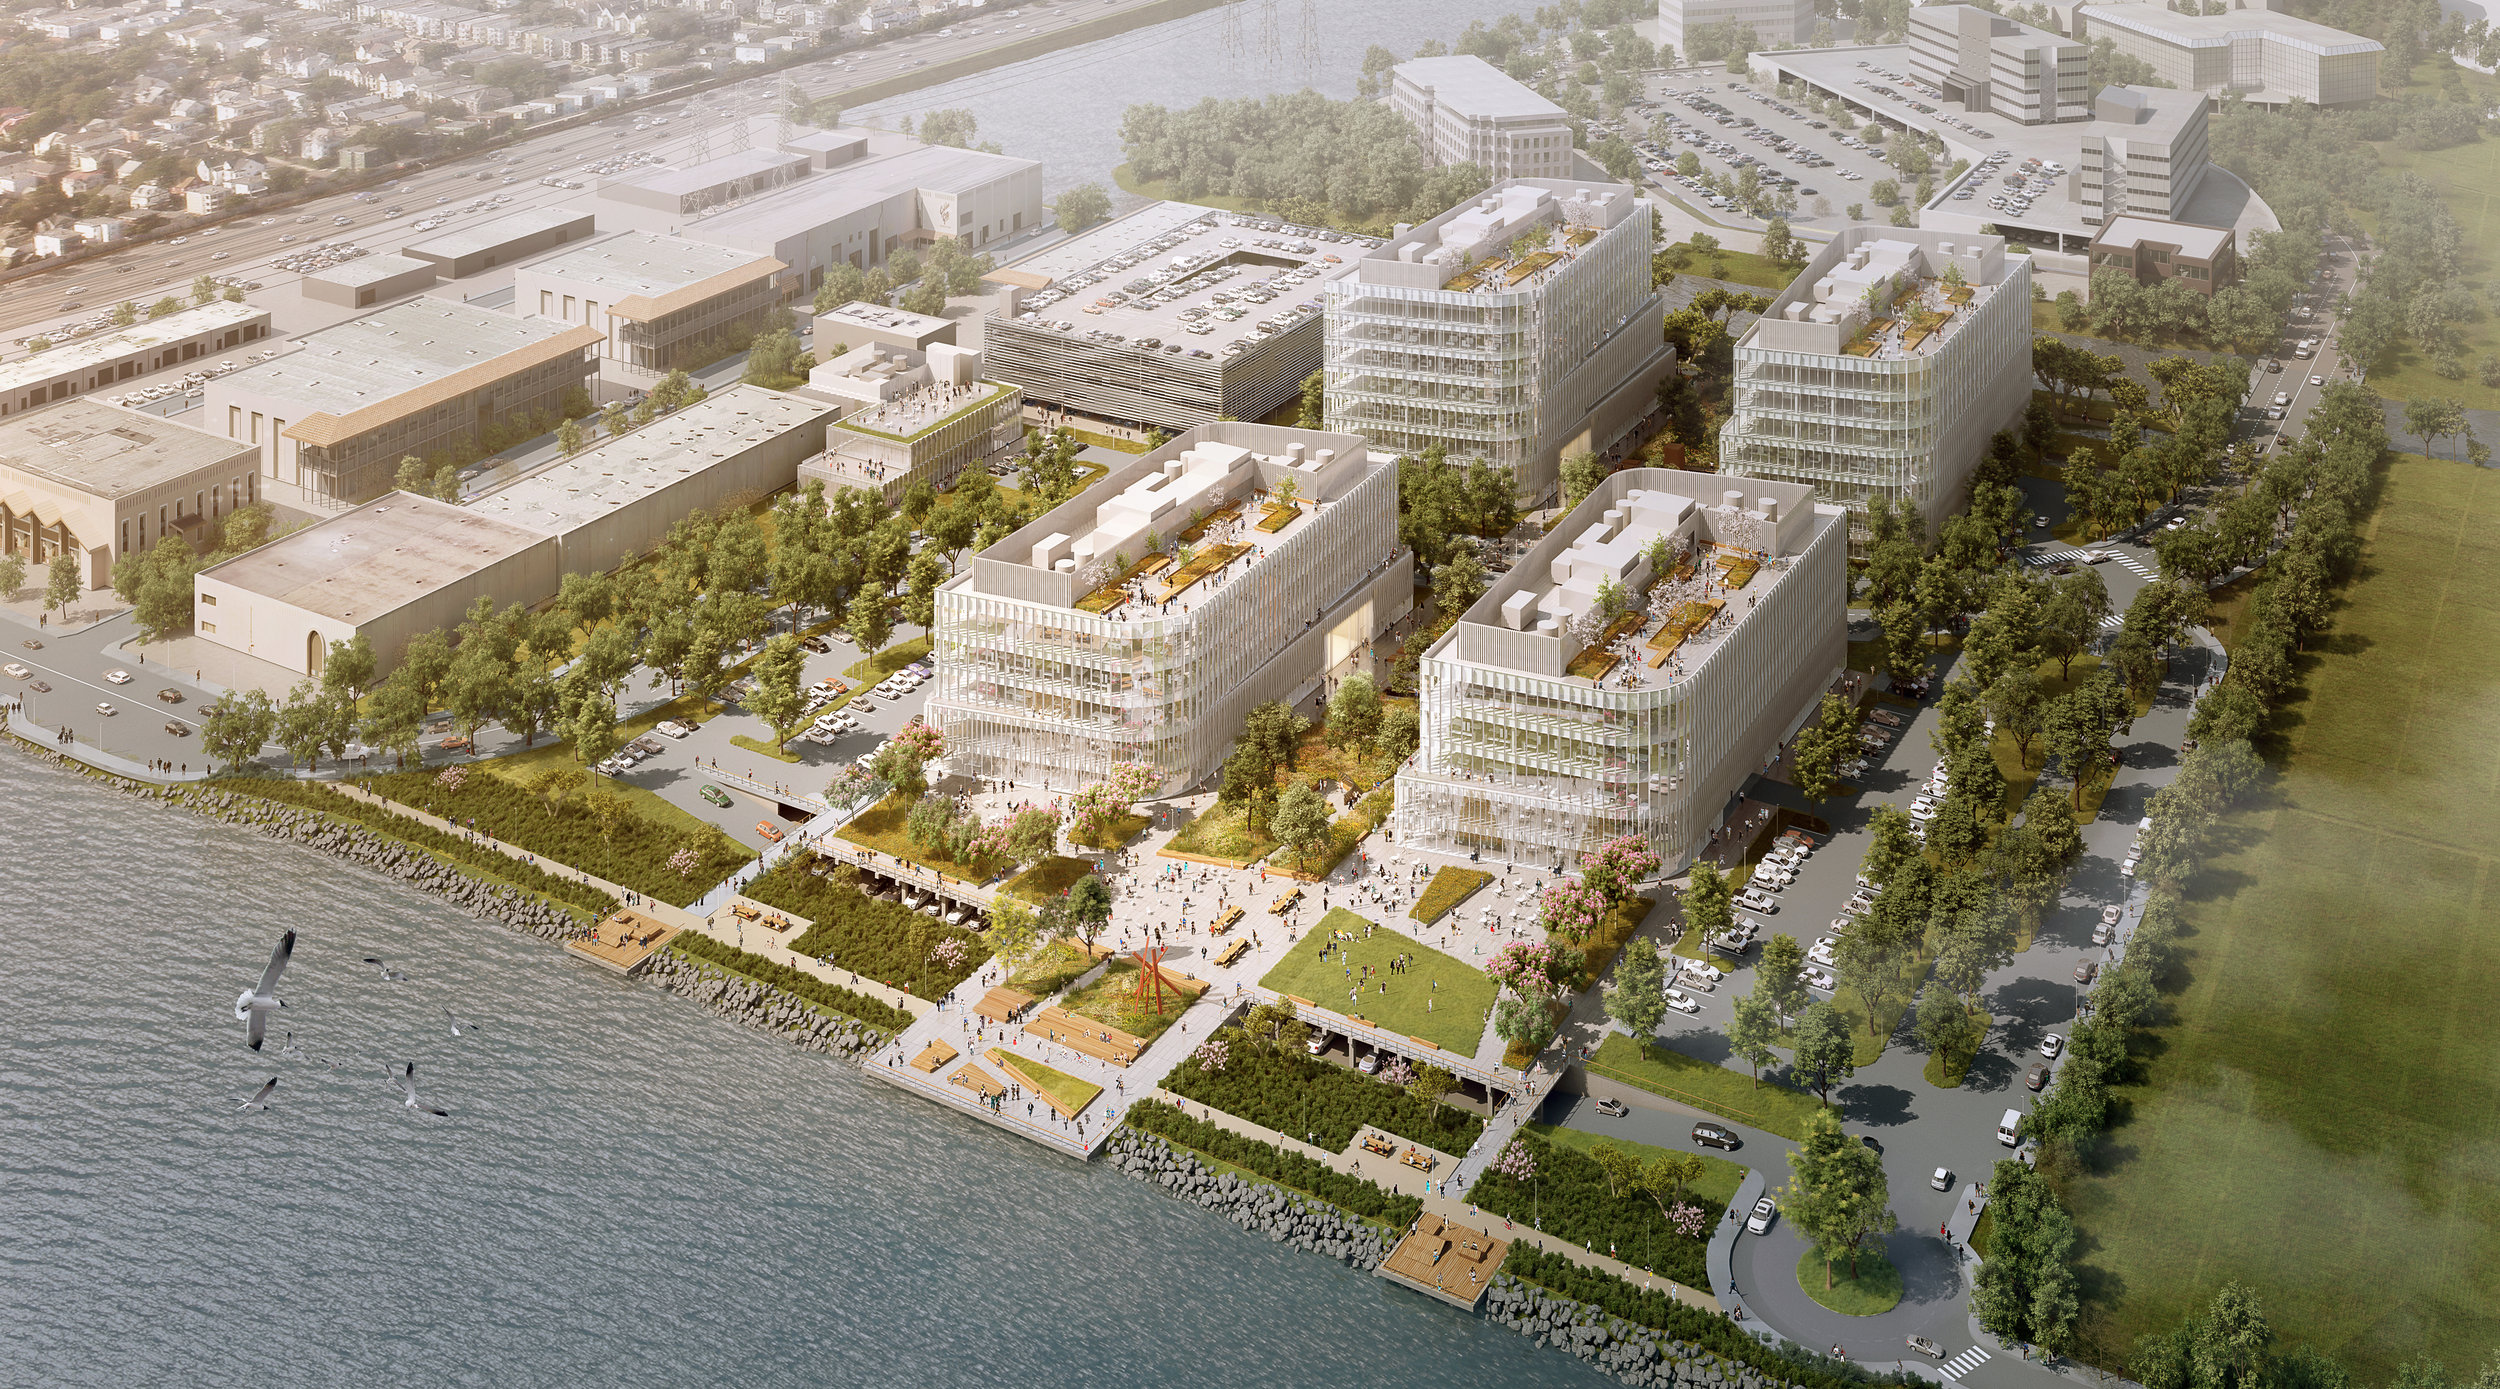 Rendering by Doug & Wolf courtesy of Cushman & Wakefield